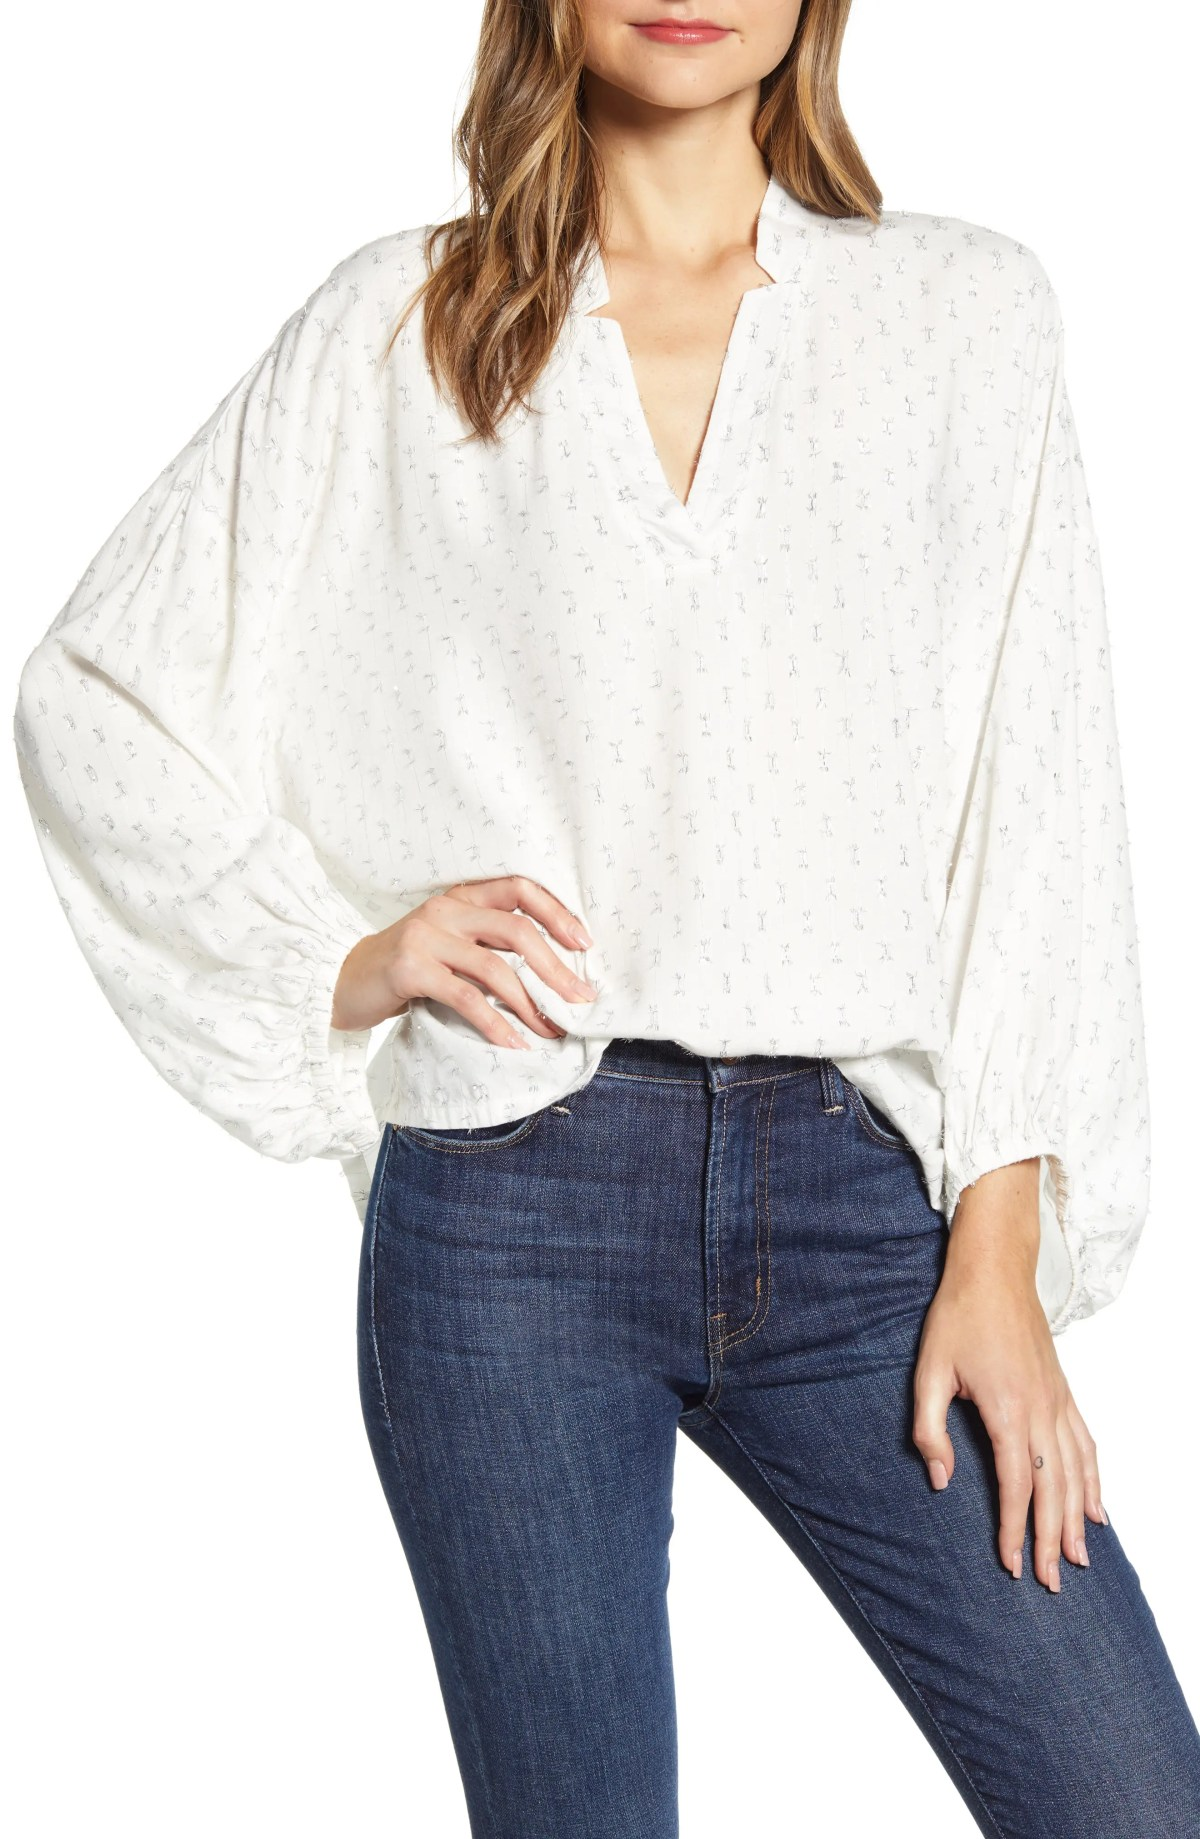 LOU & GREY Shimmer Dot Poet Blouse, Main, color, MOONLIGHT IVORY